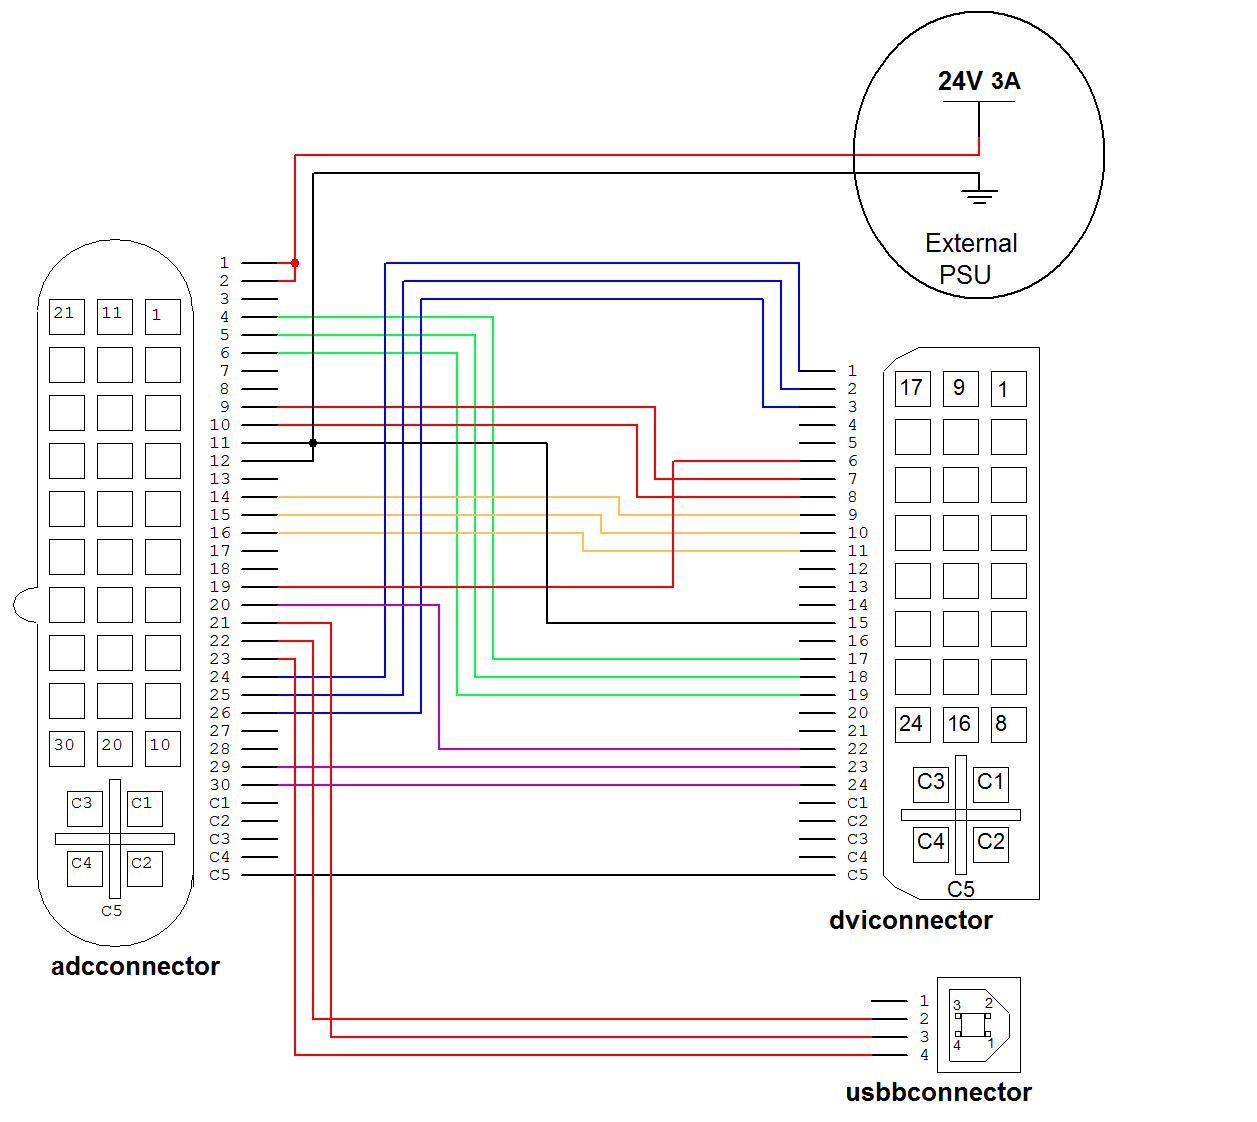 ADC DVI_Wiring dvi pin diagram dvi to hdmi cable wiring diagrams \u2022 wiring diagram  at gsmportal.co